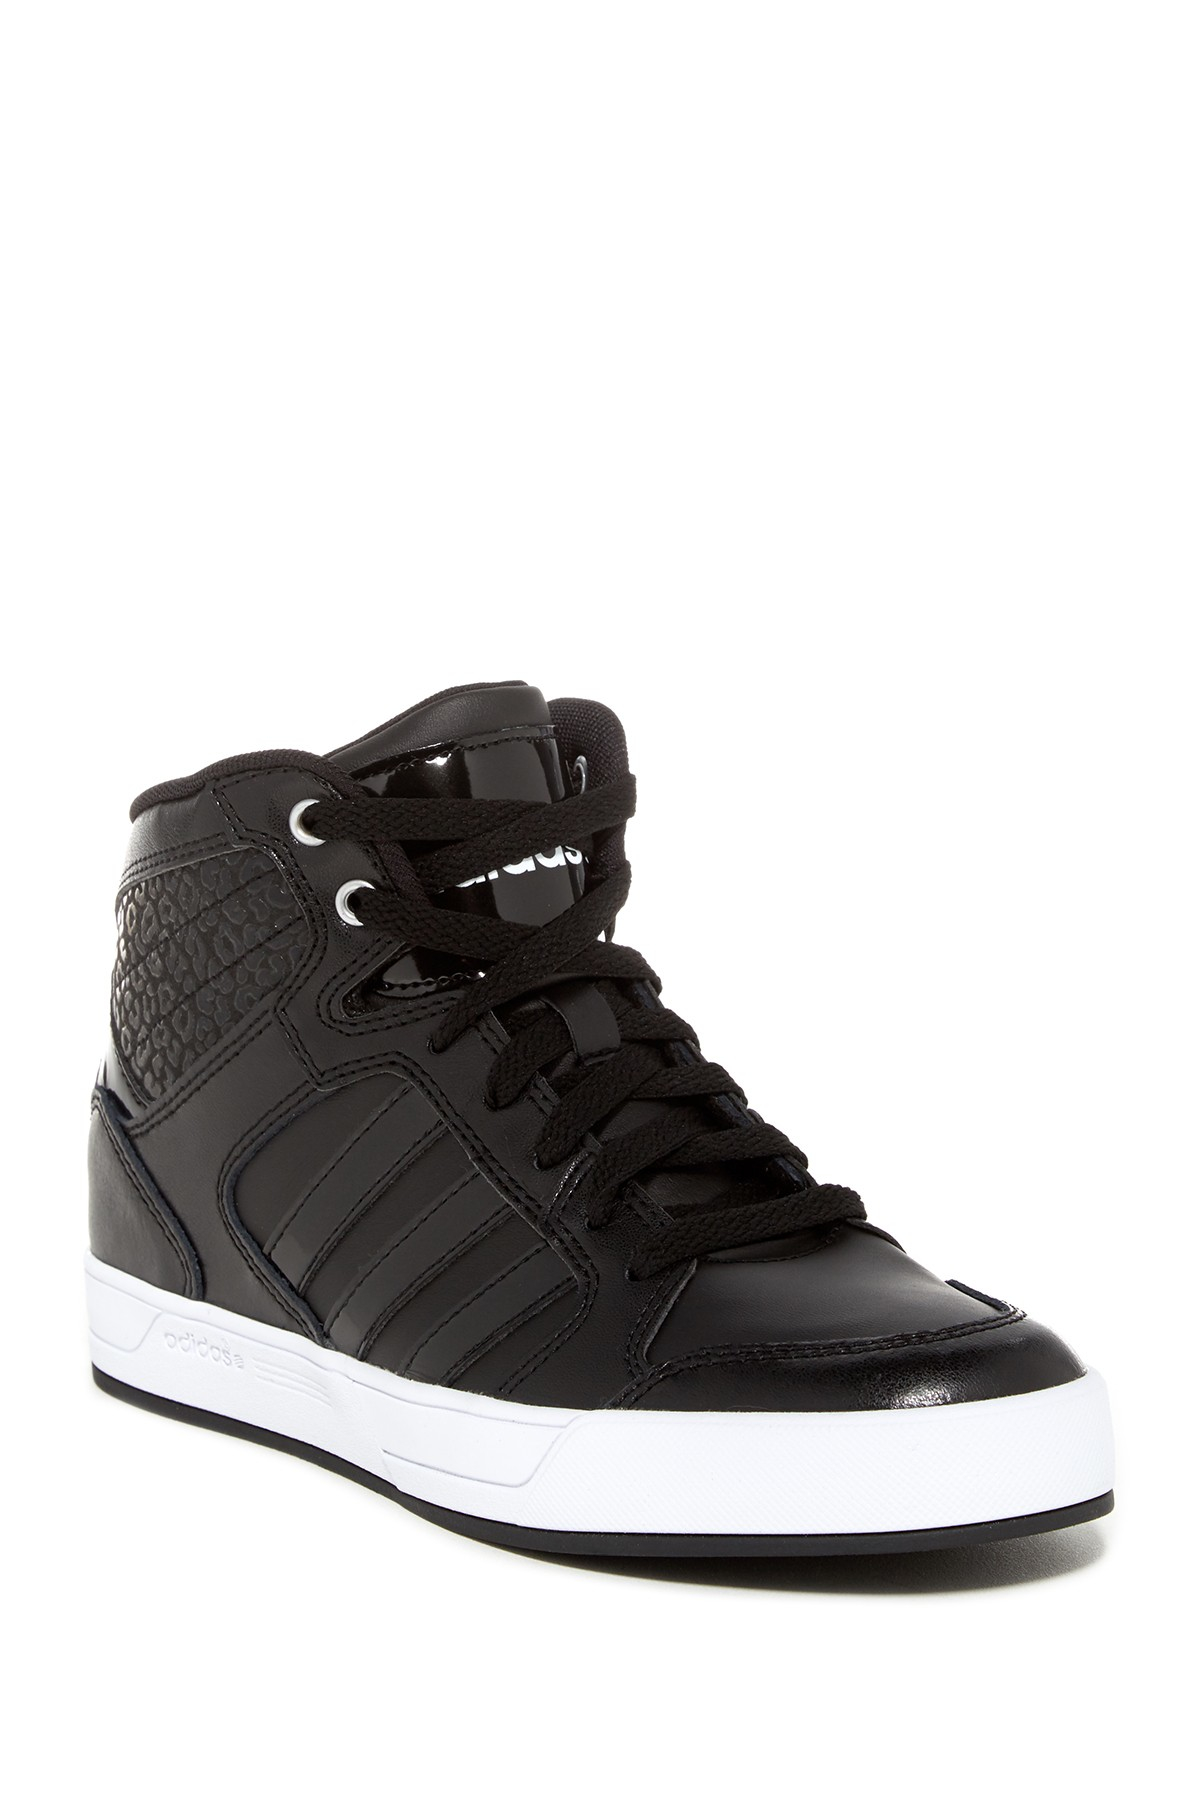 Adidas High Tops Shoes Mens Originals Lace Up Leather Black